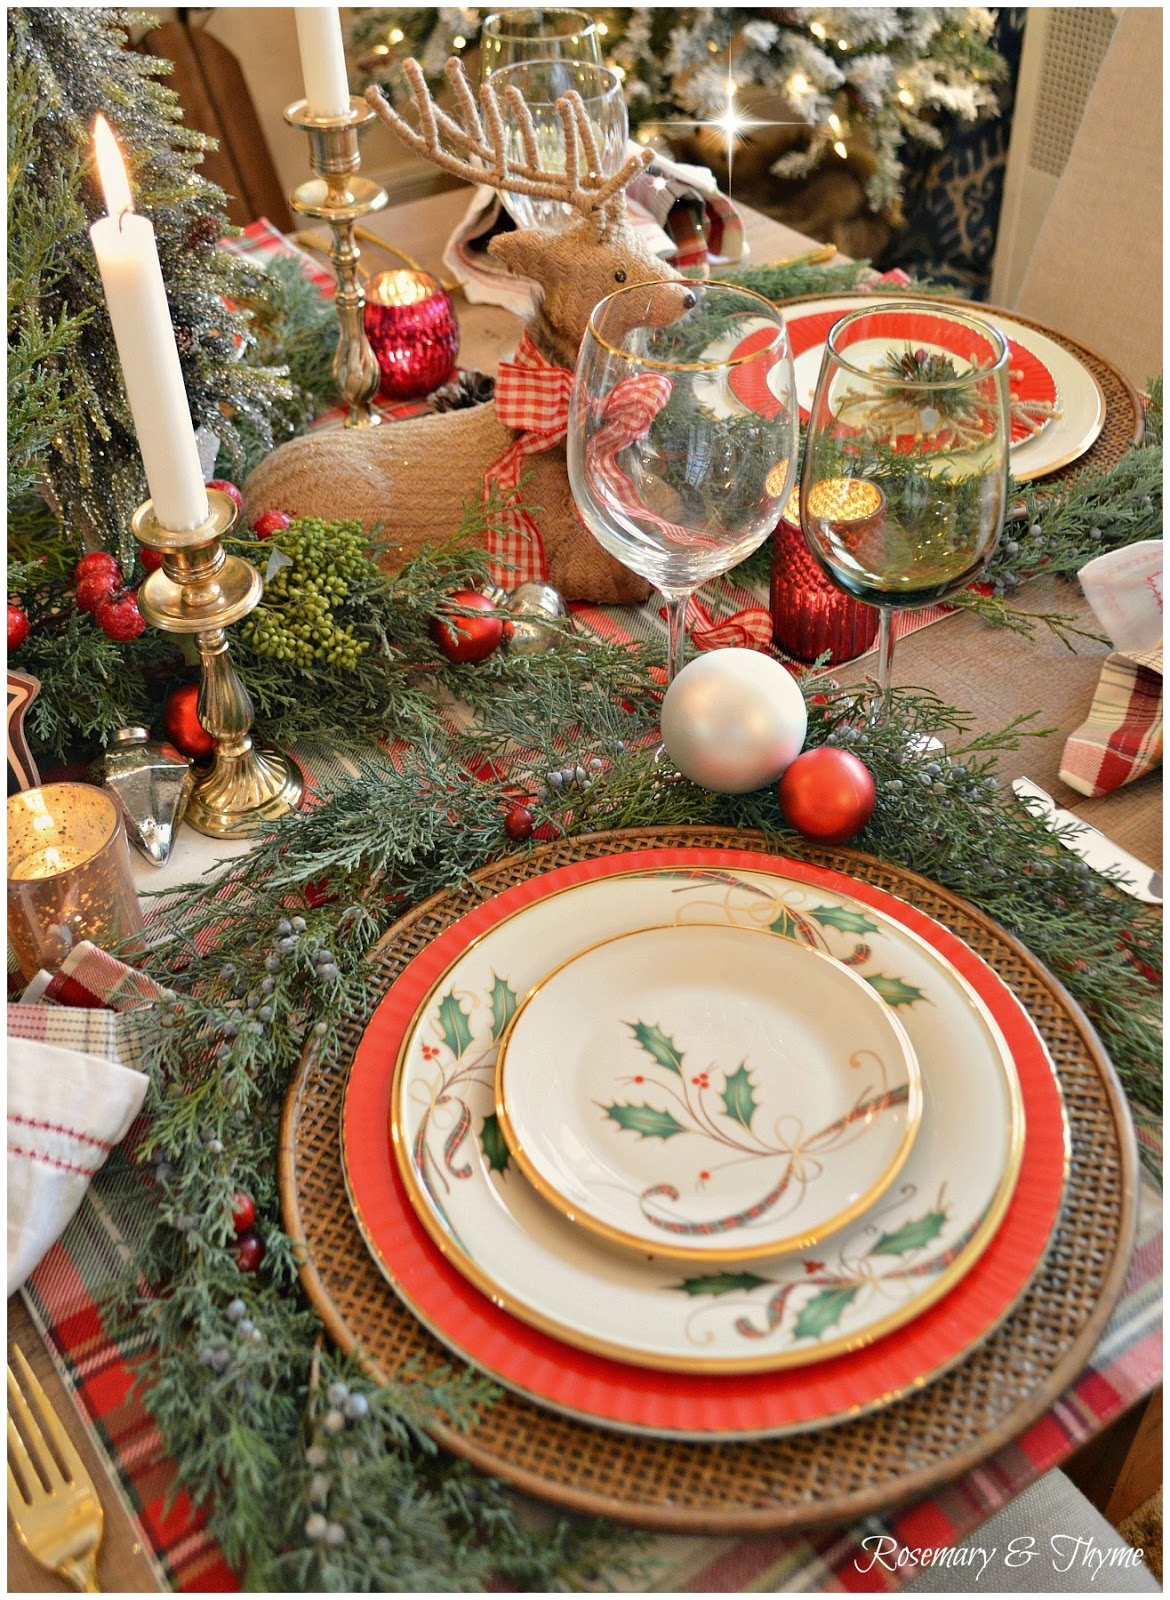 Christmas tablescape blog hop woodland christmas - Interesting tables capes for christmas providing cozy gathering space ...